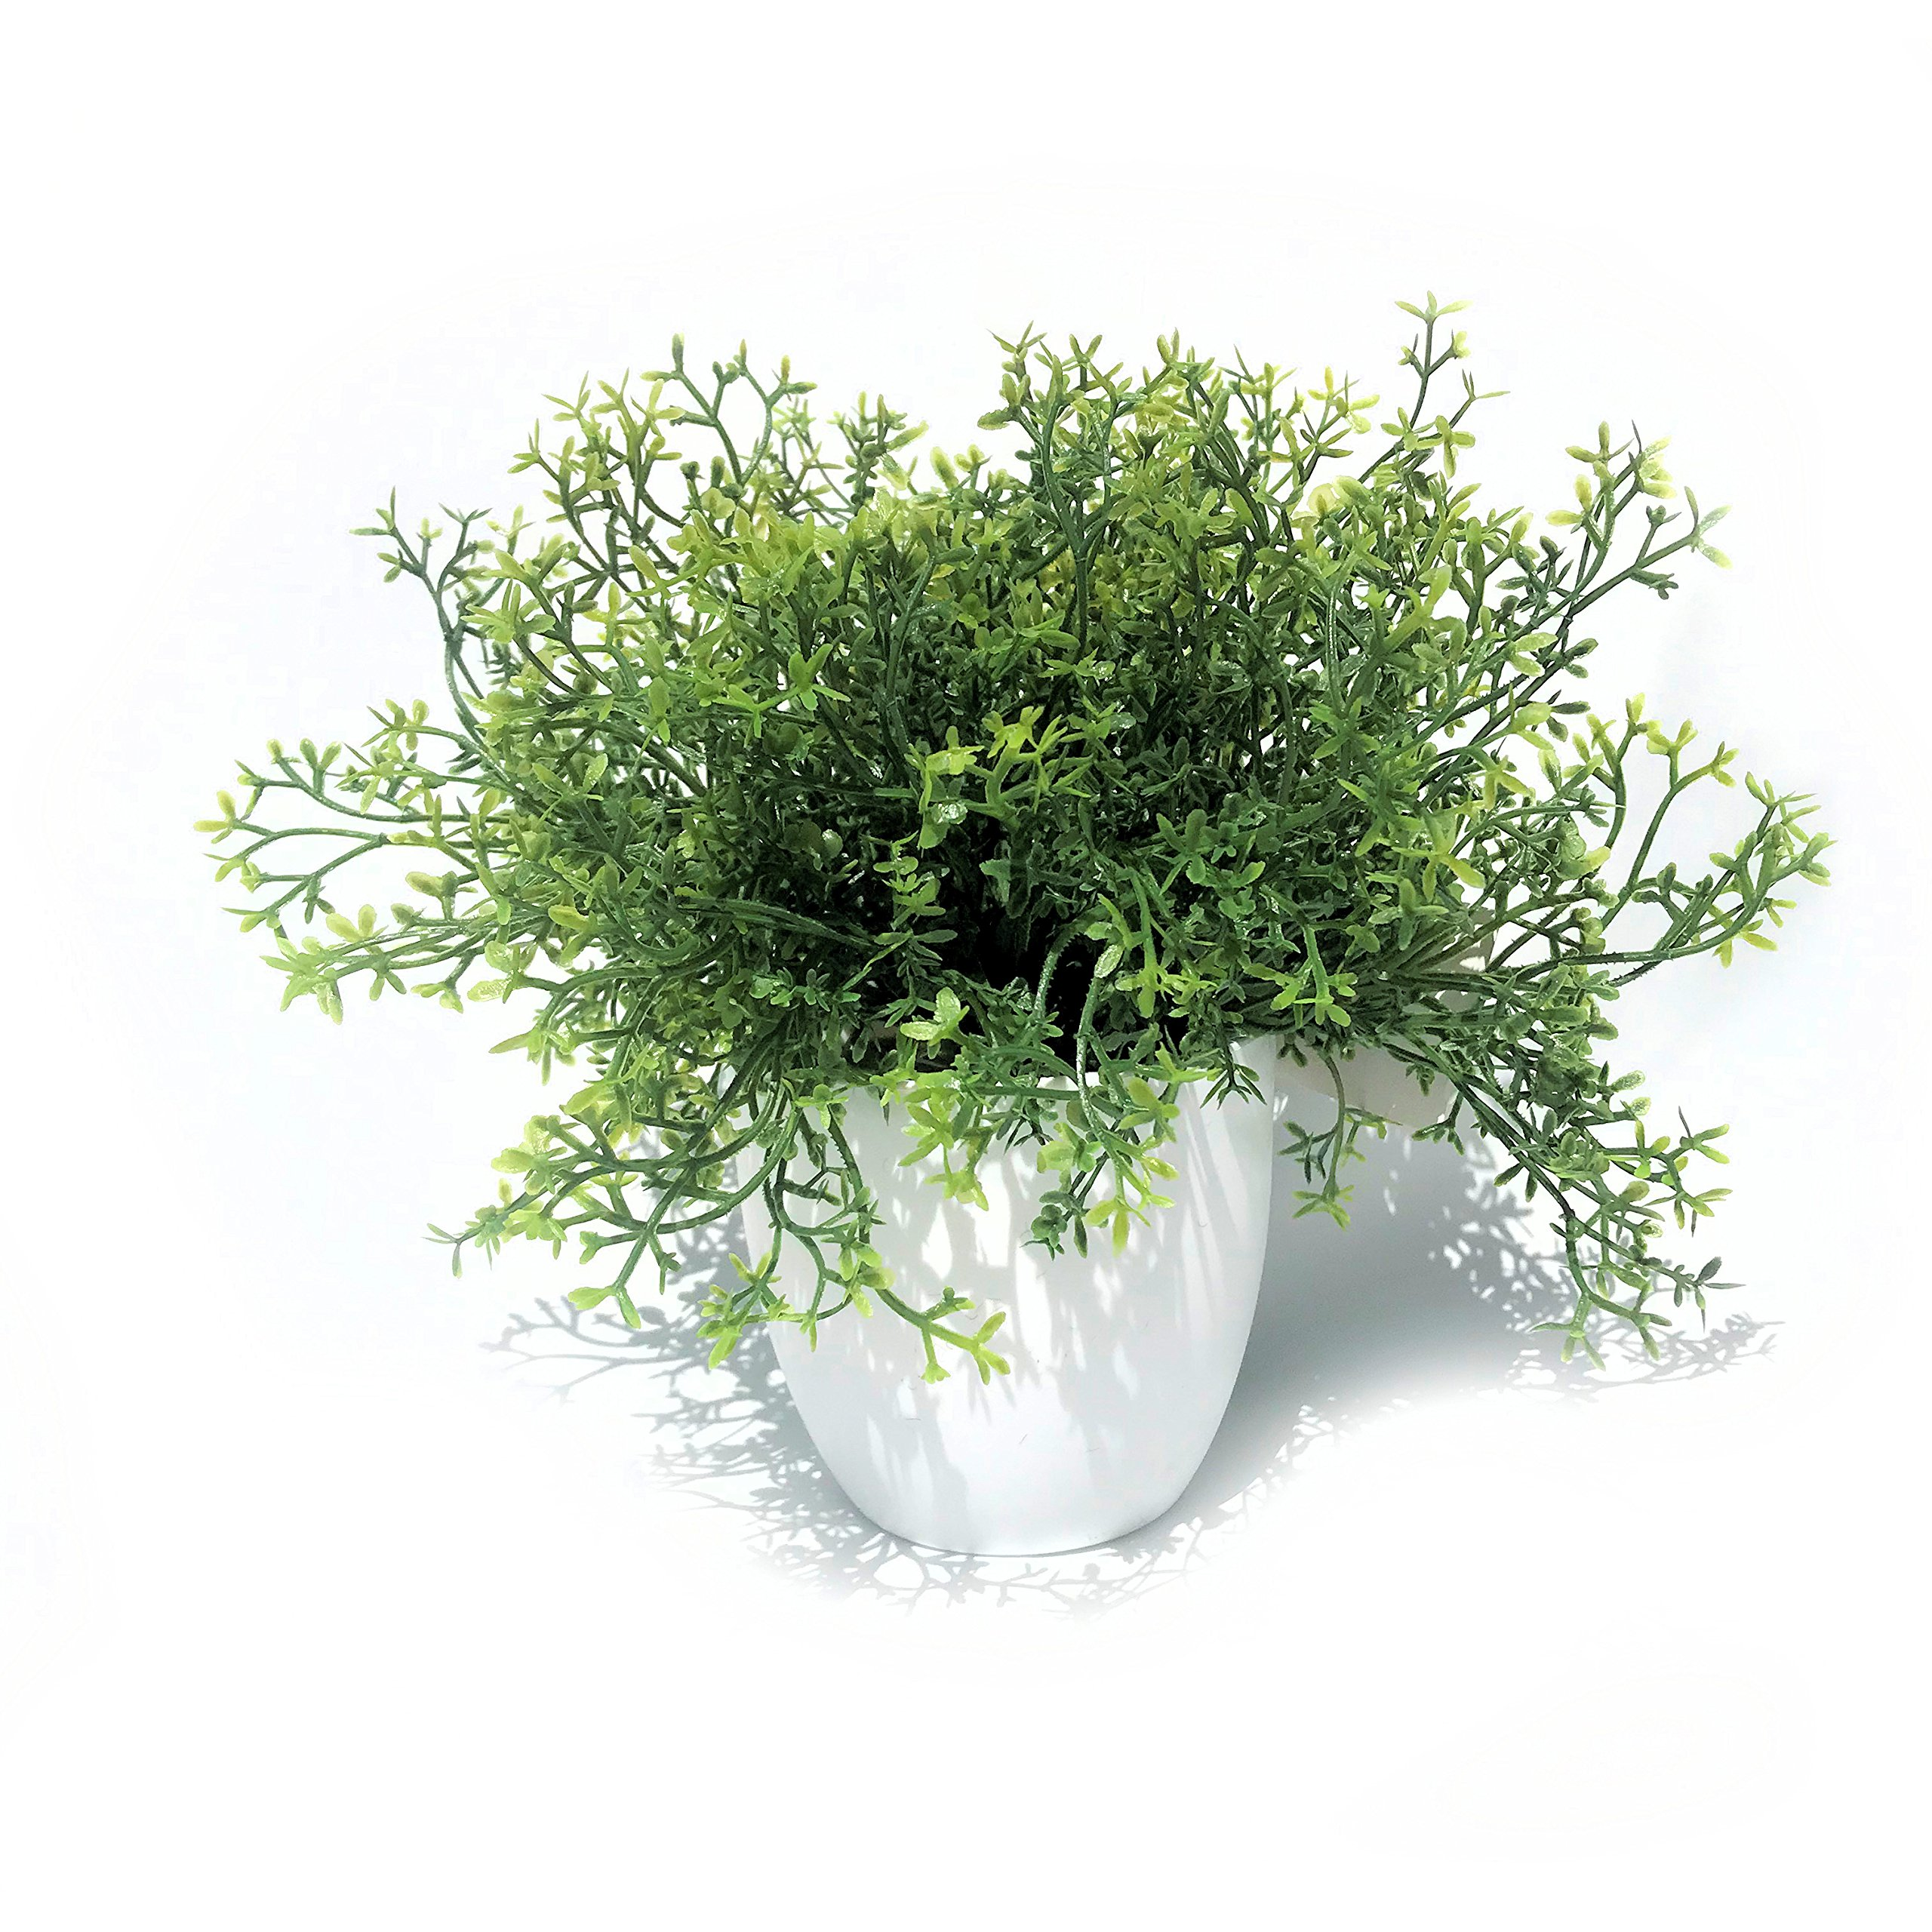 Whole House Worlds The Realistic Faux Baby Thyme, Potted Plant, Houseplant, Kitchen, Lushly Leafed, White Pot, 6 Inches Diameter x 9 ¾ Tall, Greenery